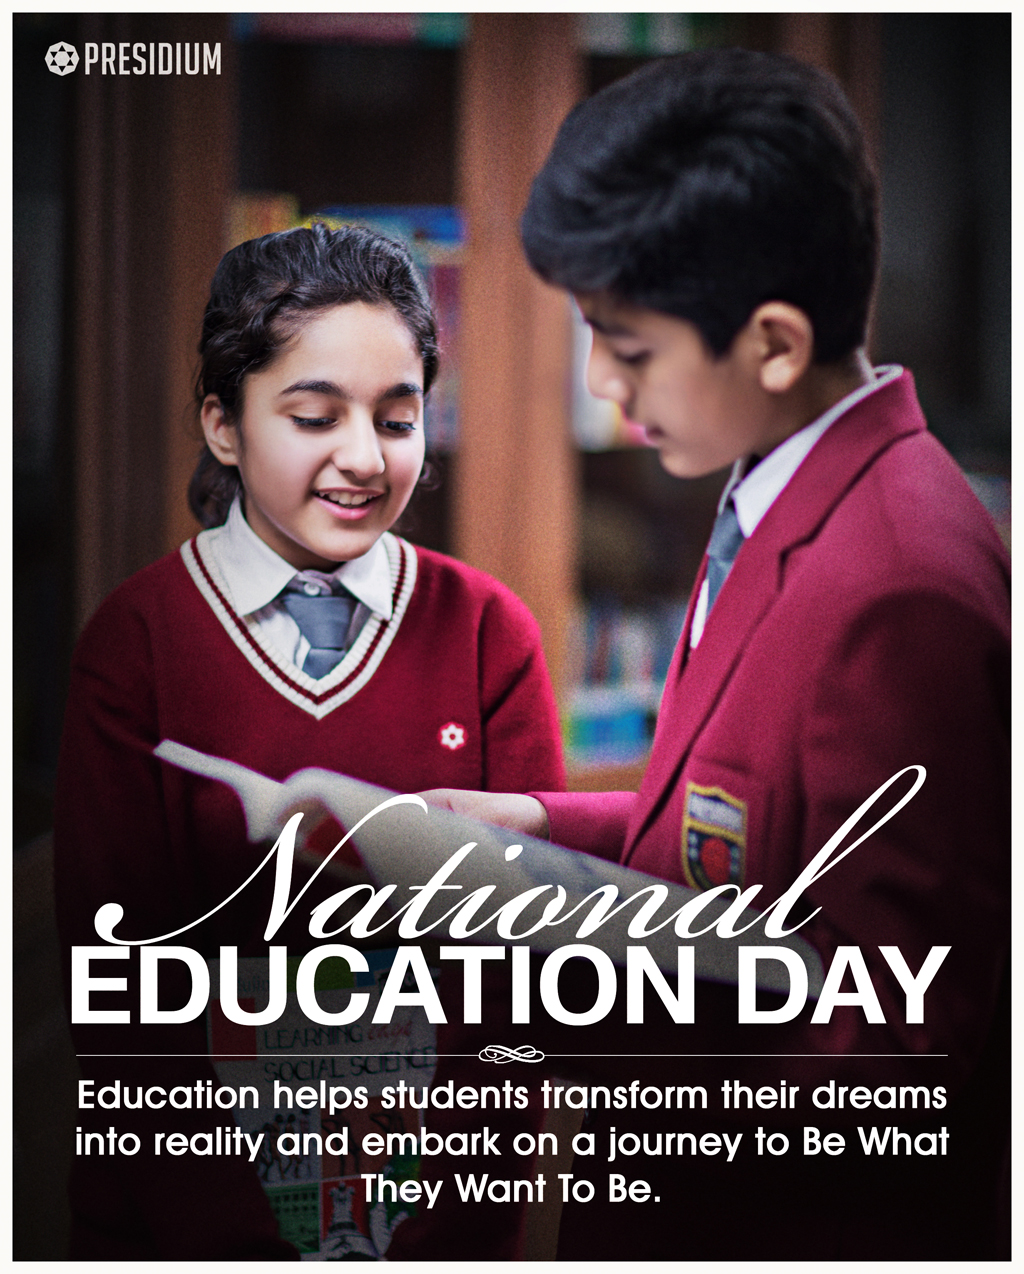 NATIONAL EDUCATION DAY: PAVING THE WAY TO FUTURE!